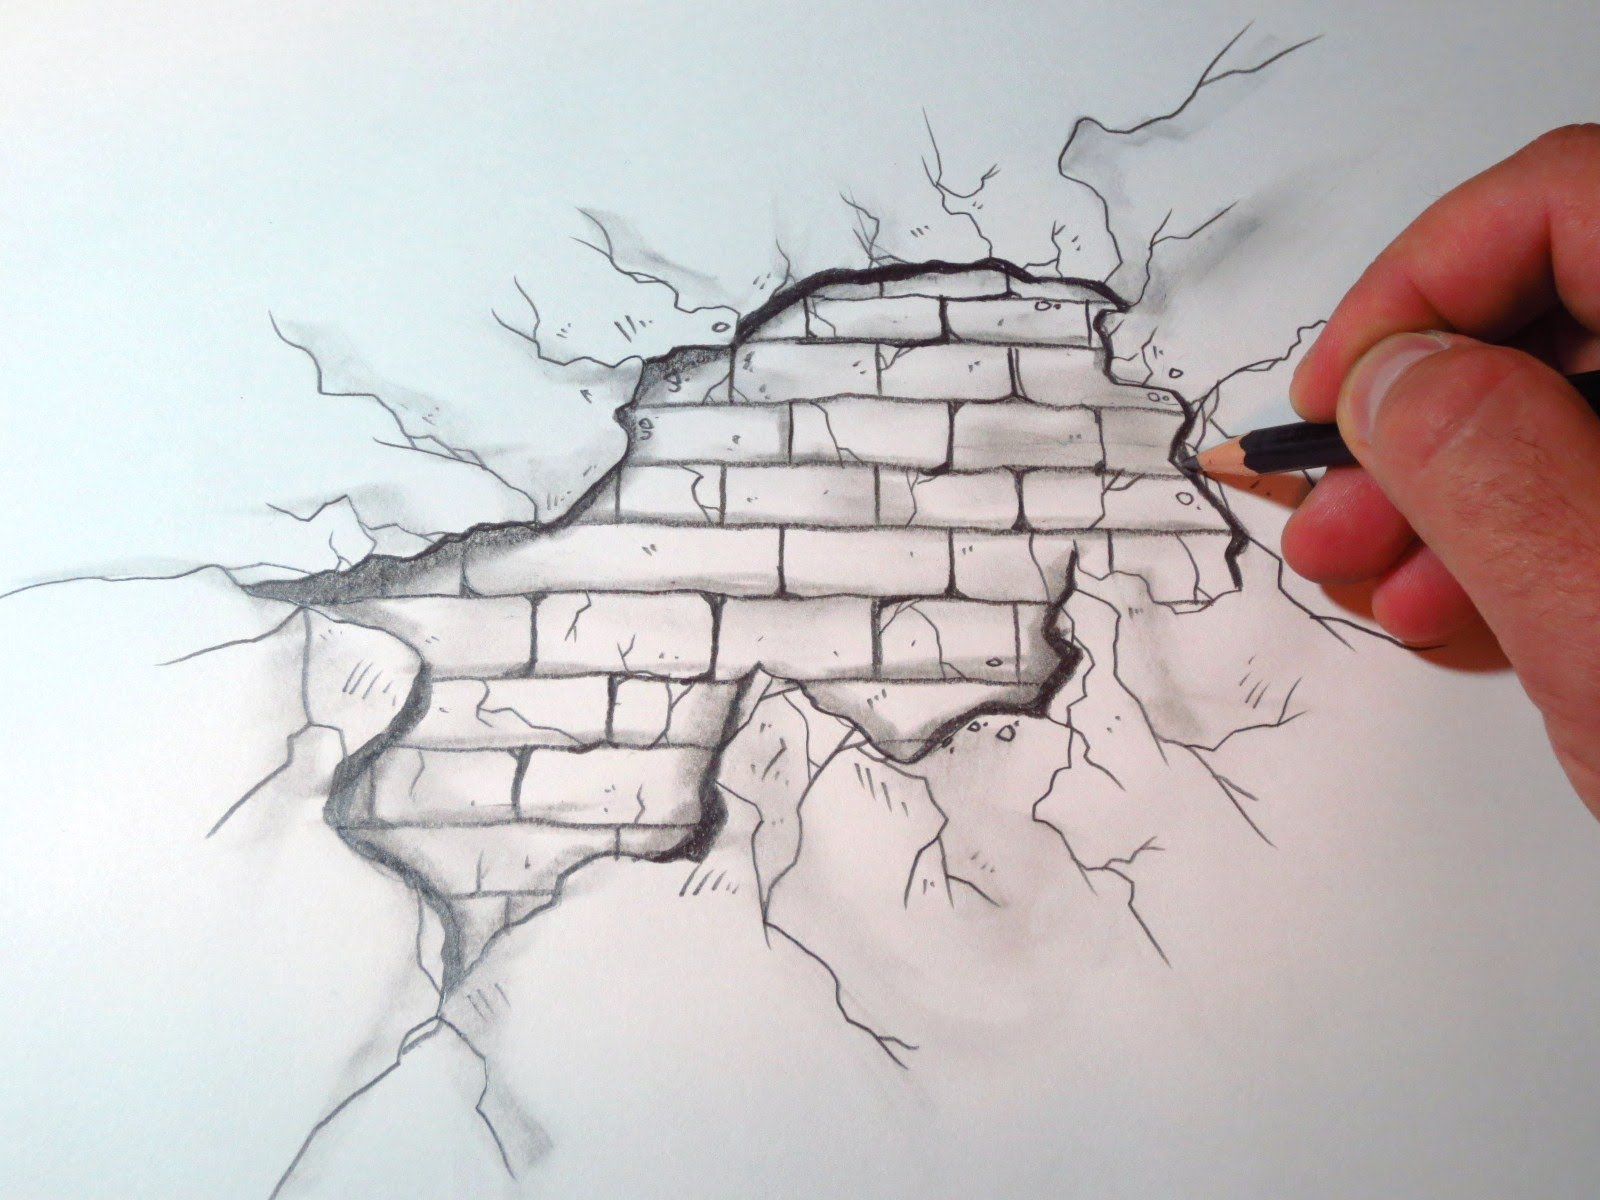 Free download How To Draw A Cracked Brick Wall The Original [1600x1200] for your Desktop, Mobile & Tablet | Explore 47+ Awesome Drawn Wallpapers | HD Drawing Wallpaper, Cute Drawn Wallpapers, Drawn